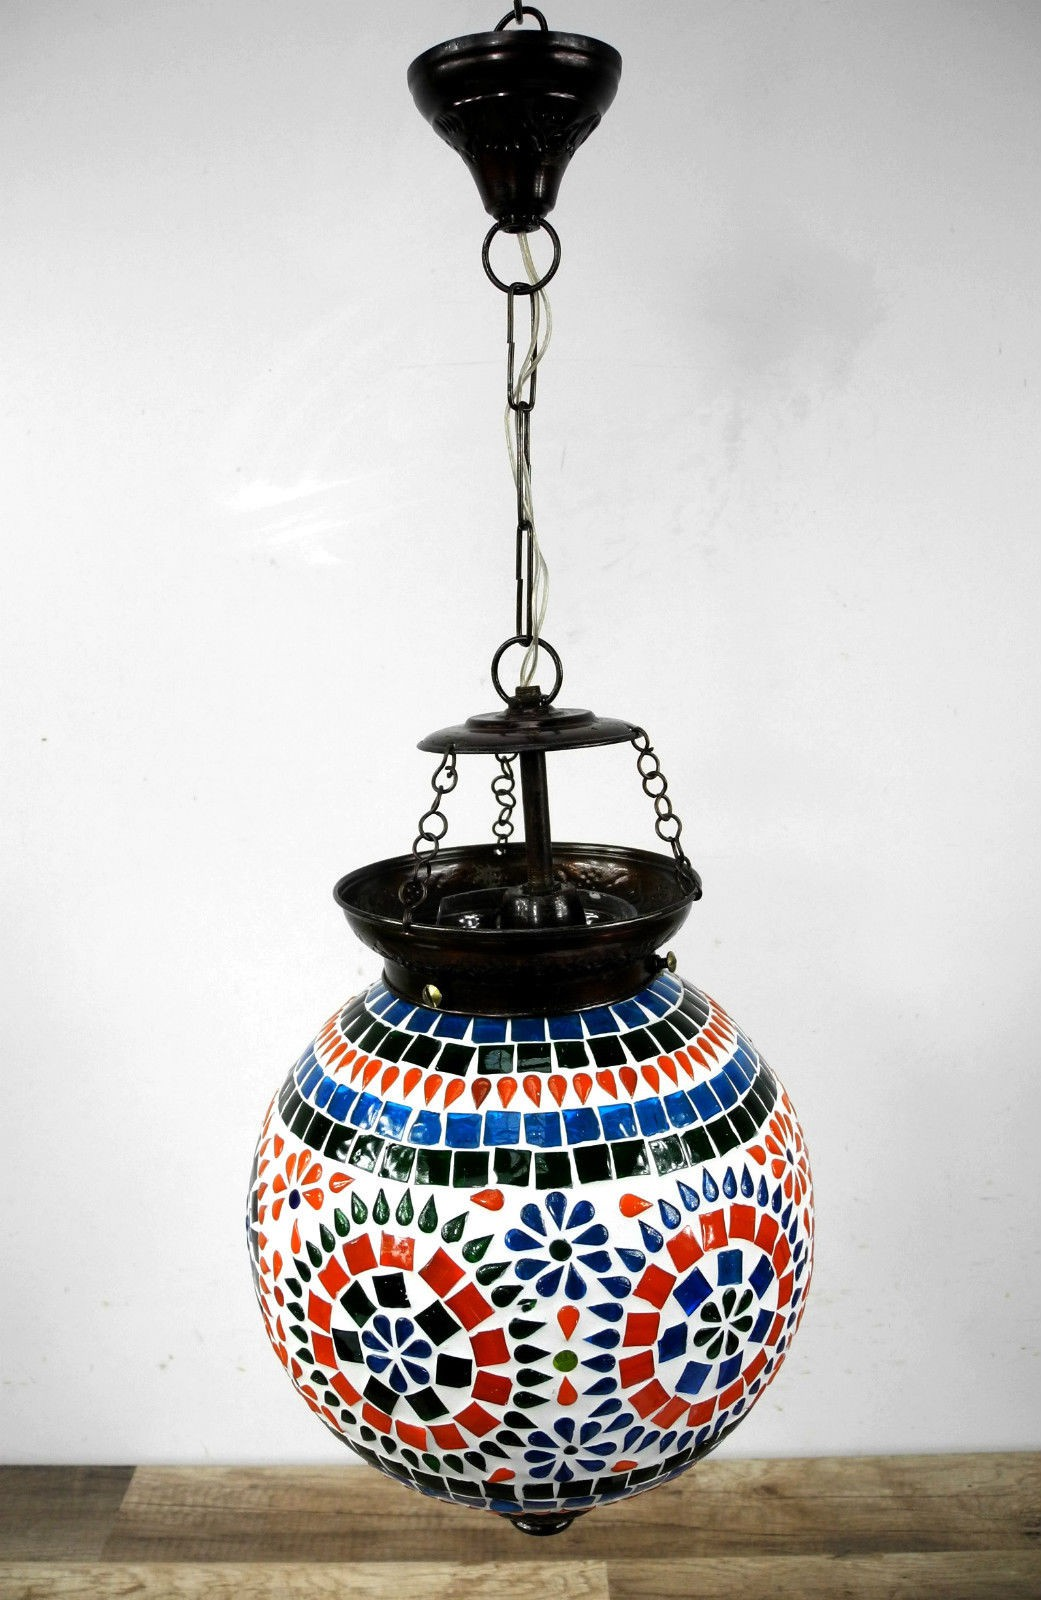 h nge mosaik lampen rund orientalisch dekoleuchte bunt color nr 7406 ebay. Black Bedroom Furniture Sets. Home Design Ideas